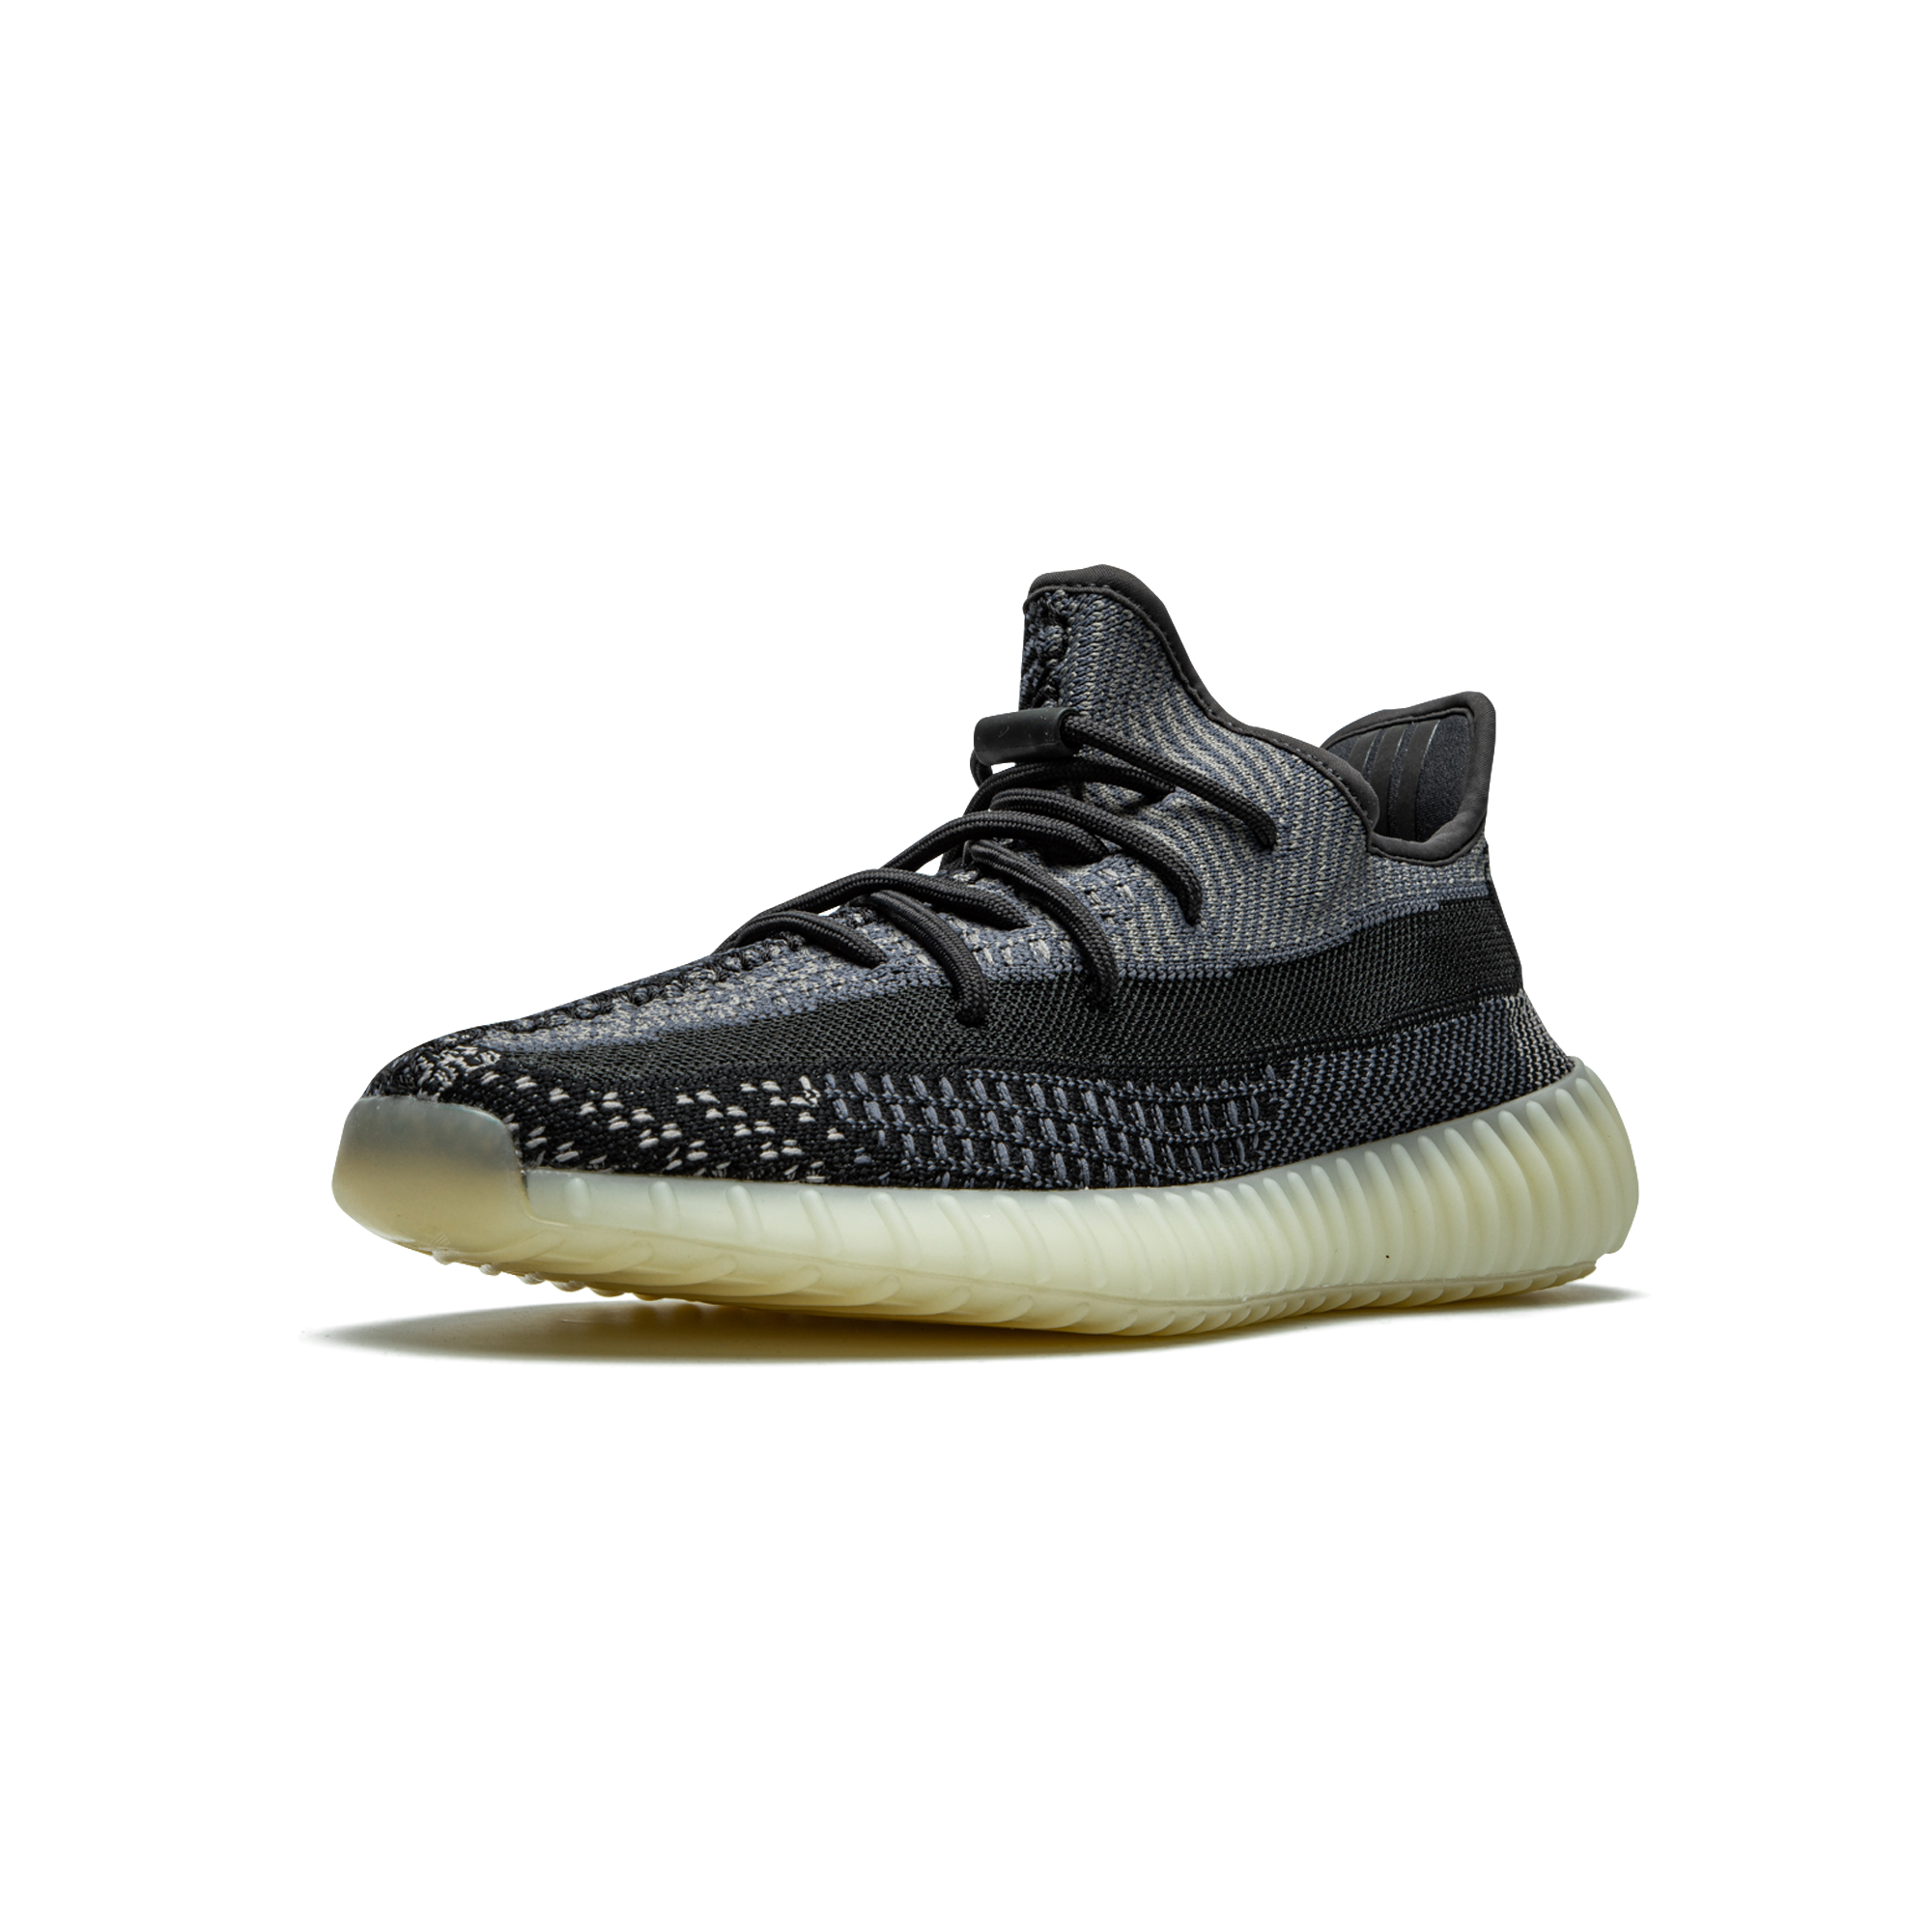 YEEZY Boost 350 V2 - Carbon